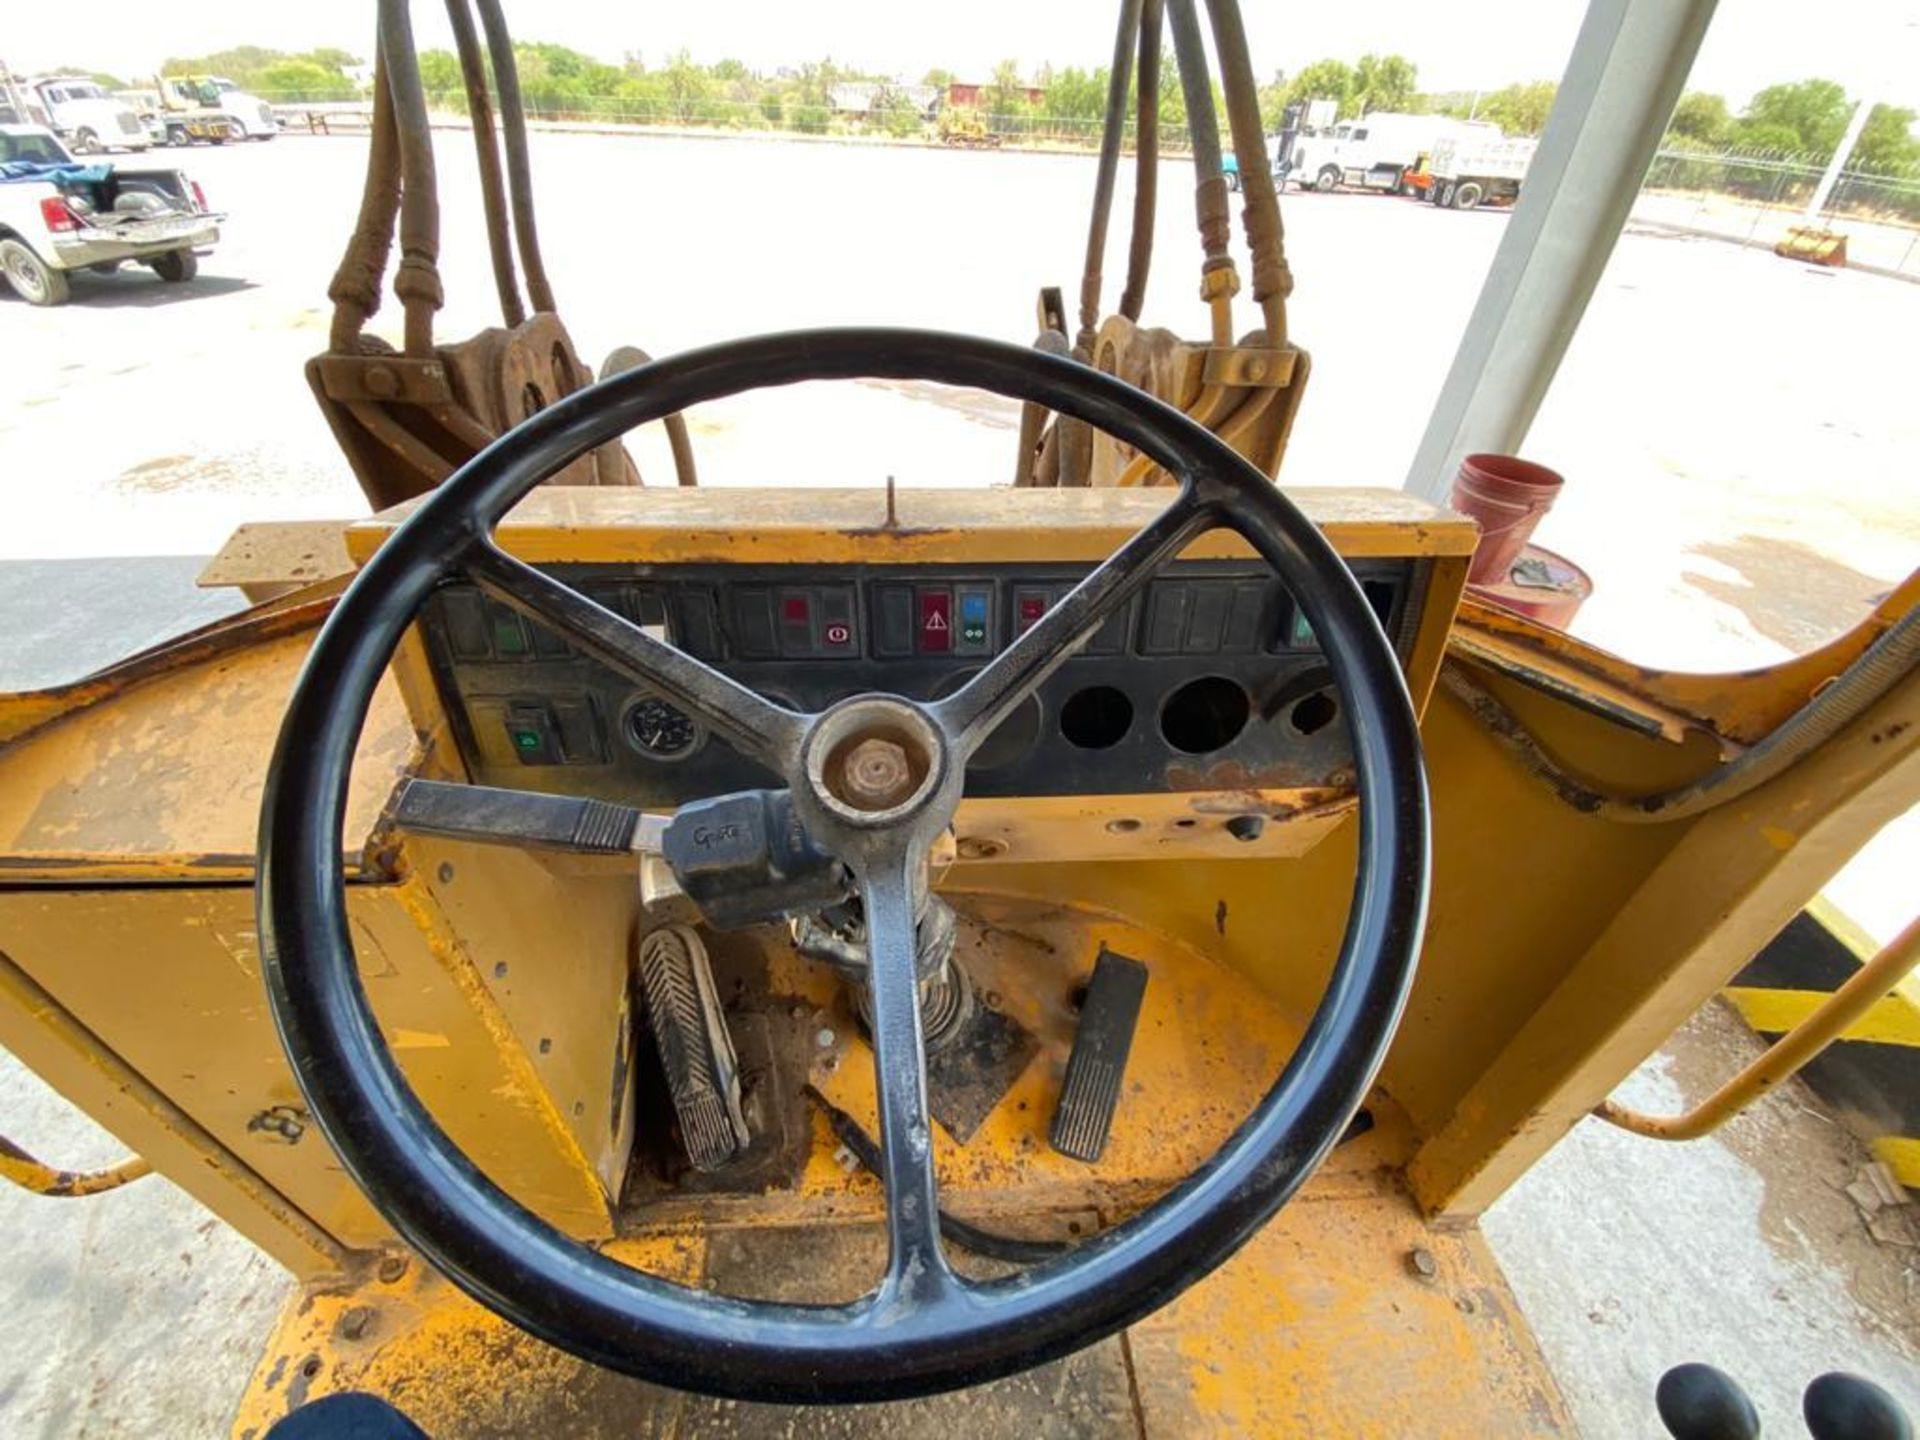 Volvo BM TYPE L 30 Michigan Front Loder, automatic transmission - Image 31 of 53